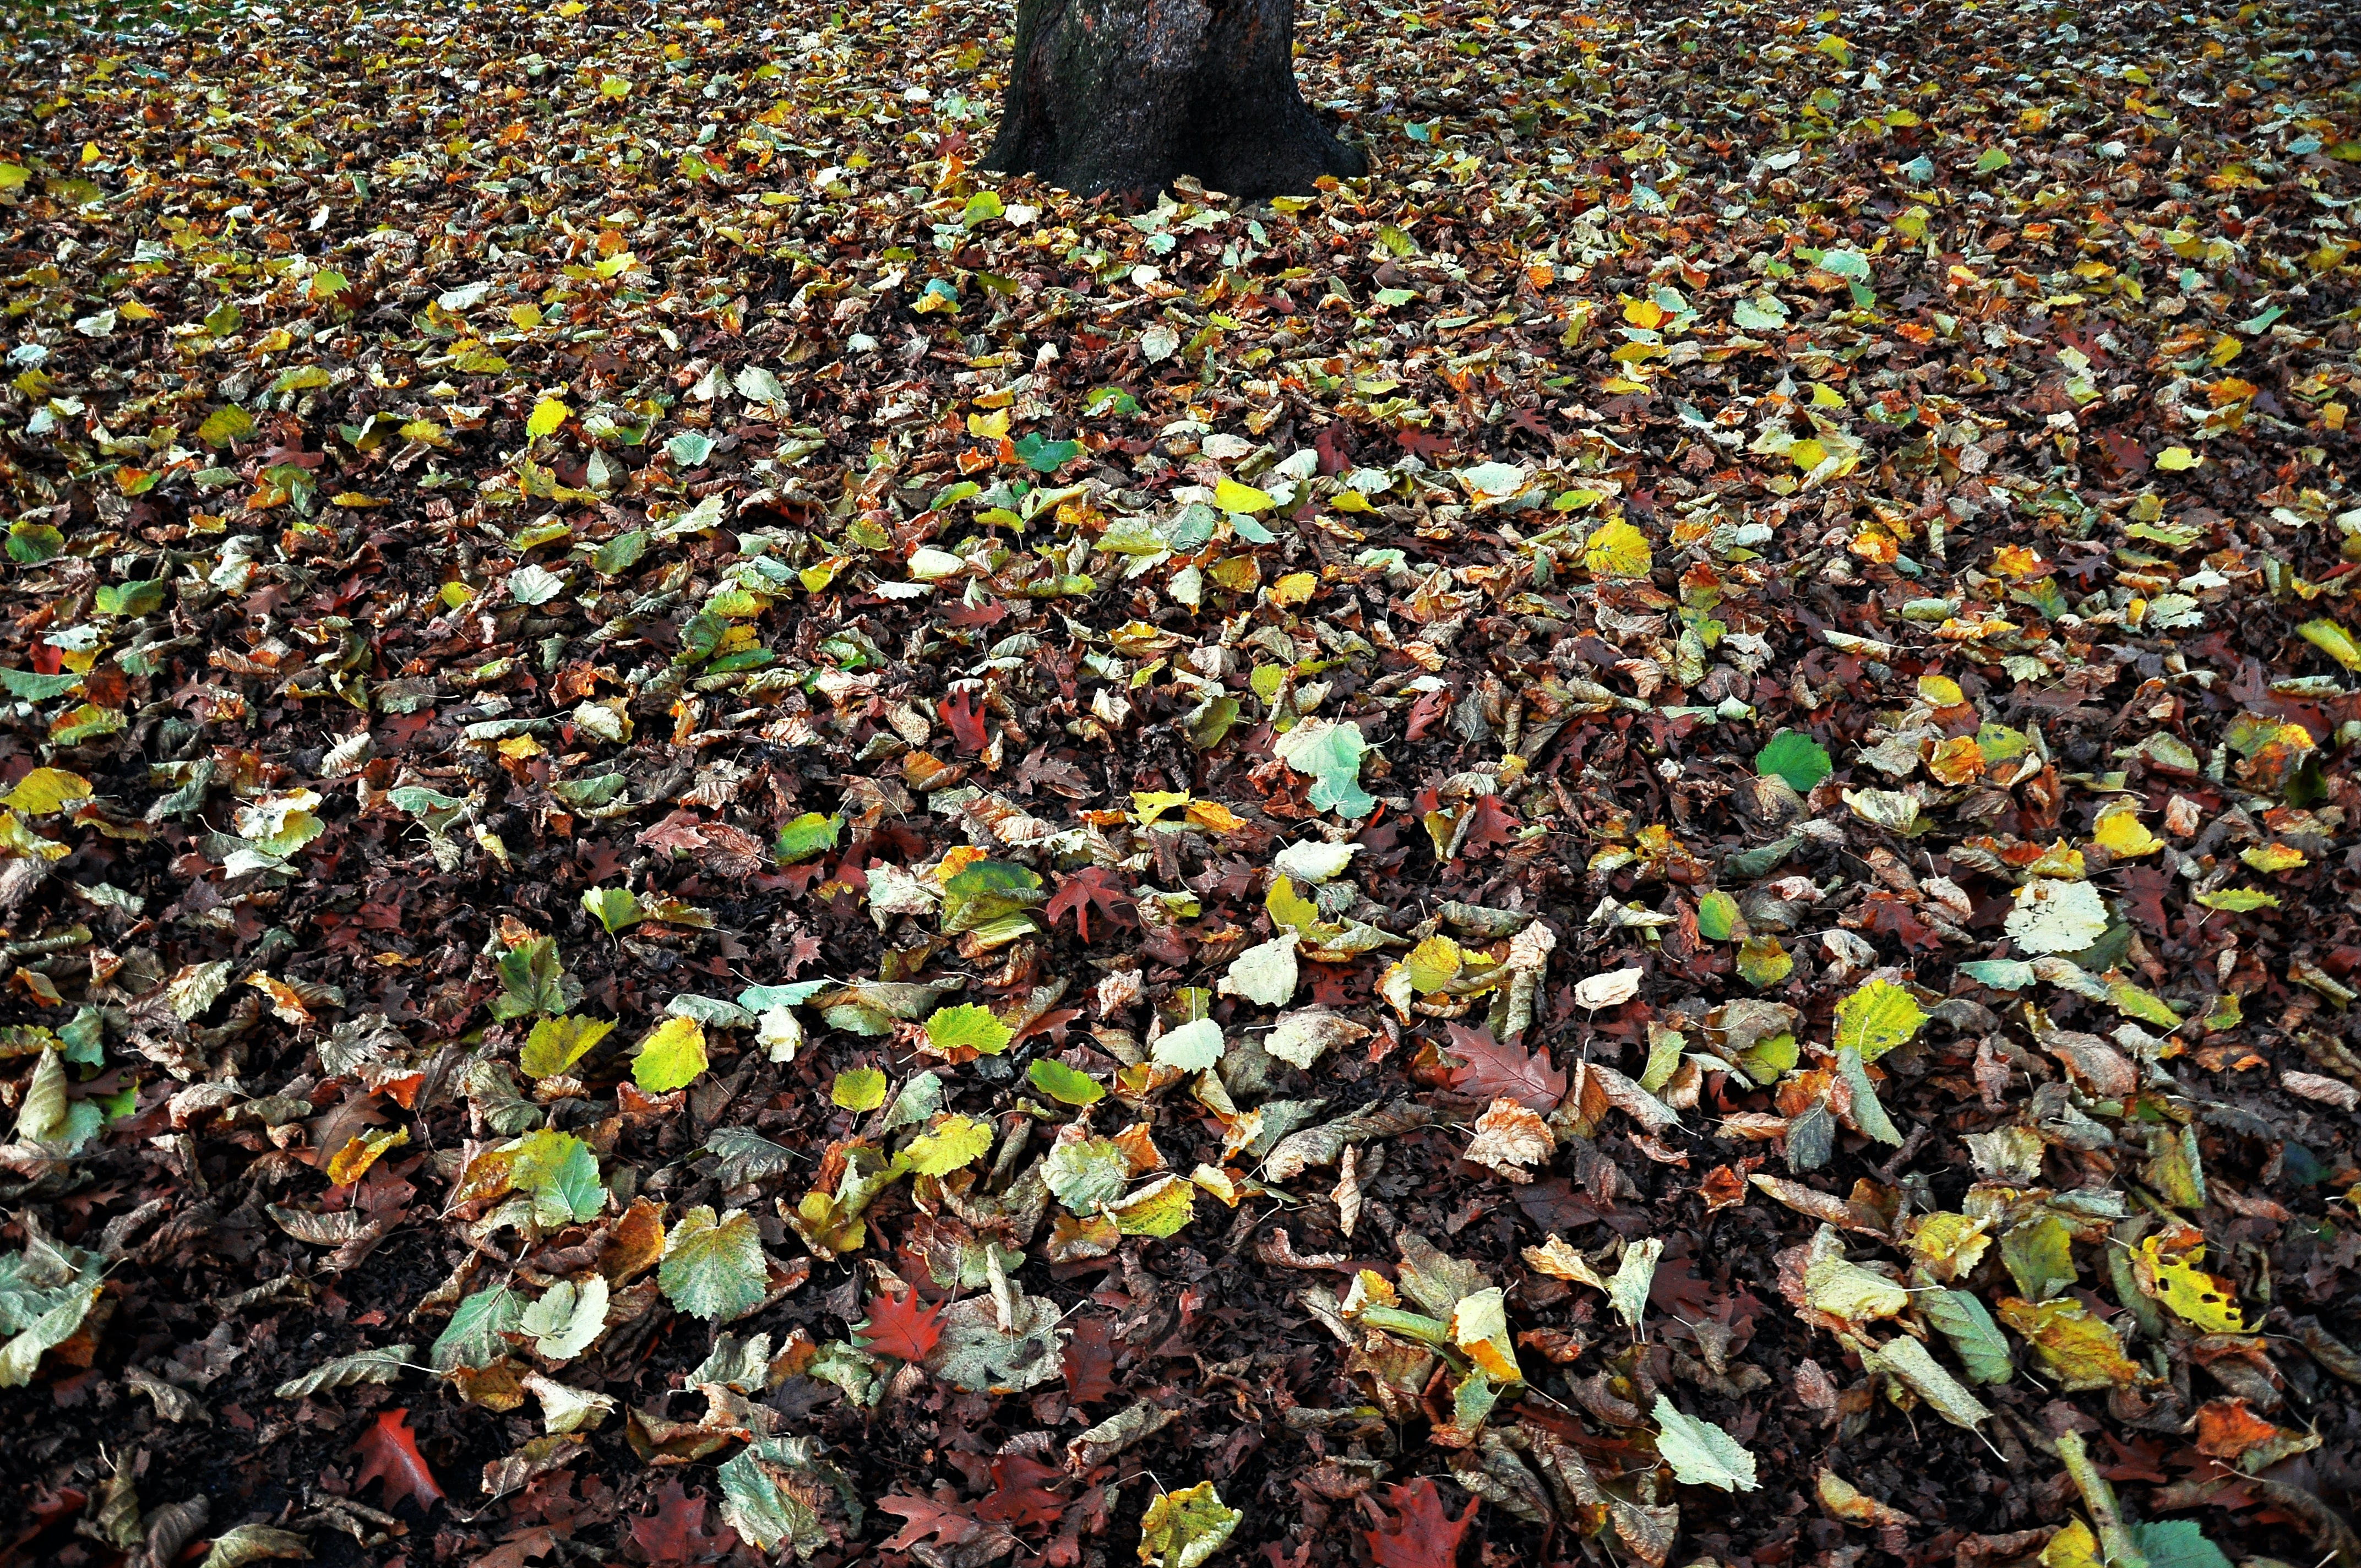 Colorful autumn leaves entirely covering the forest floor near a tree in Hammer Park